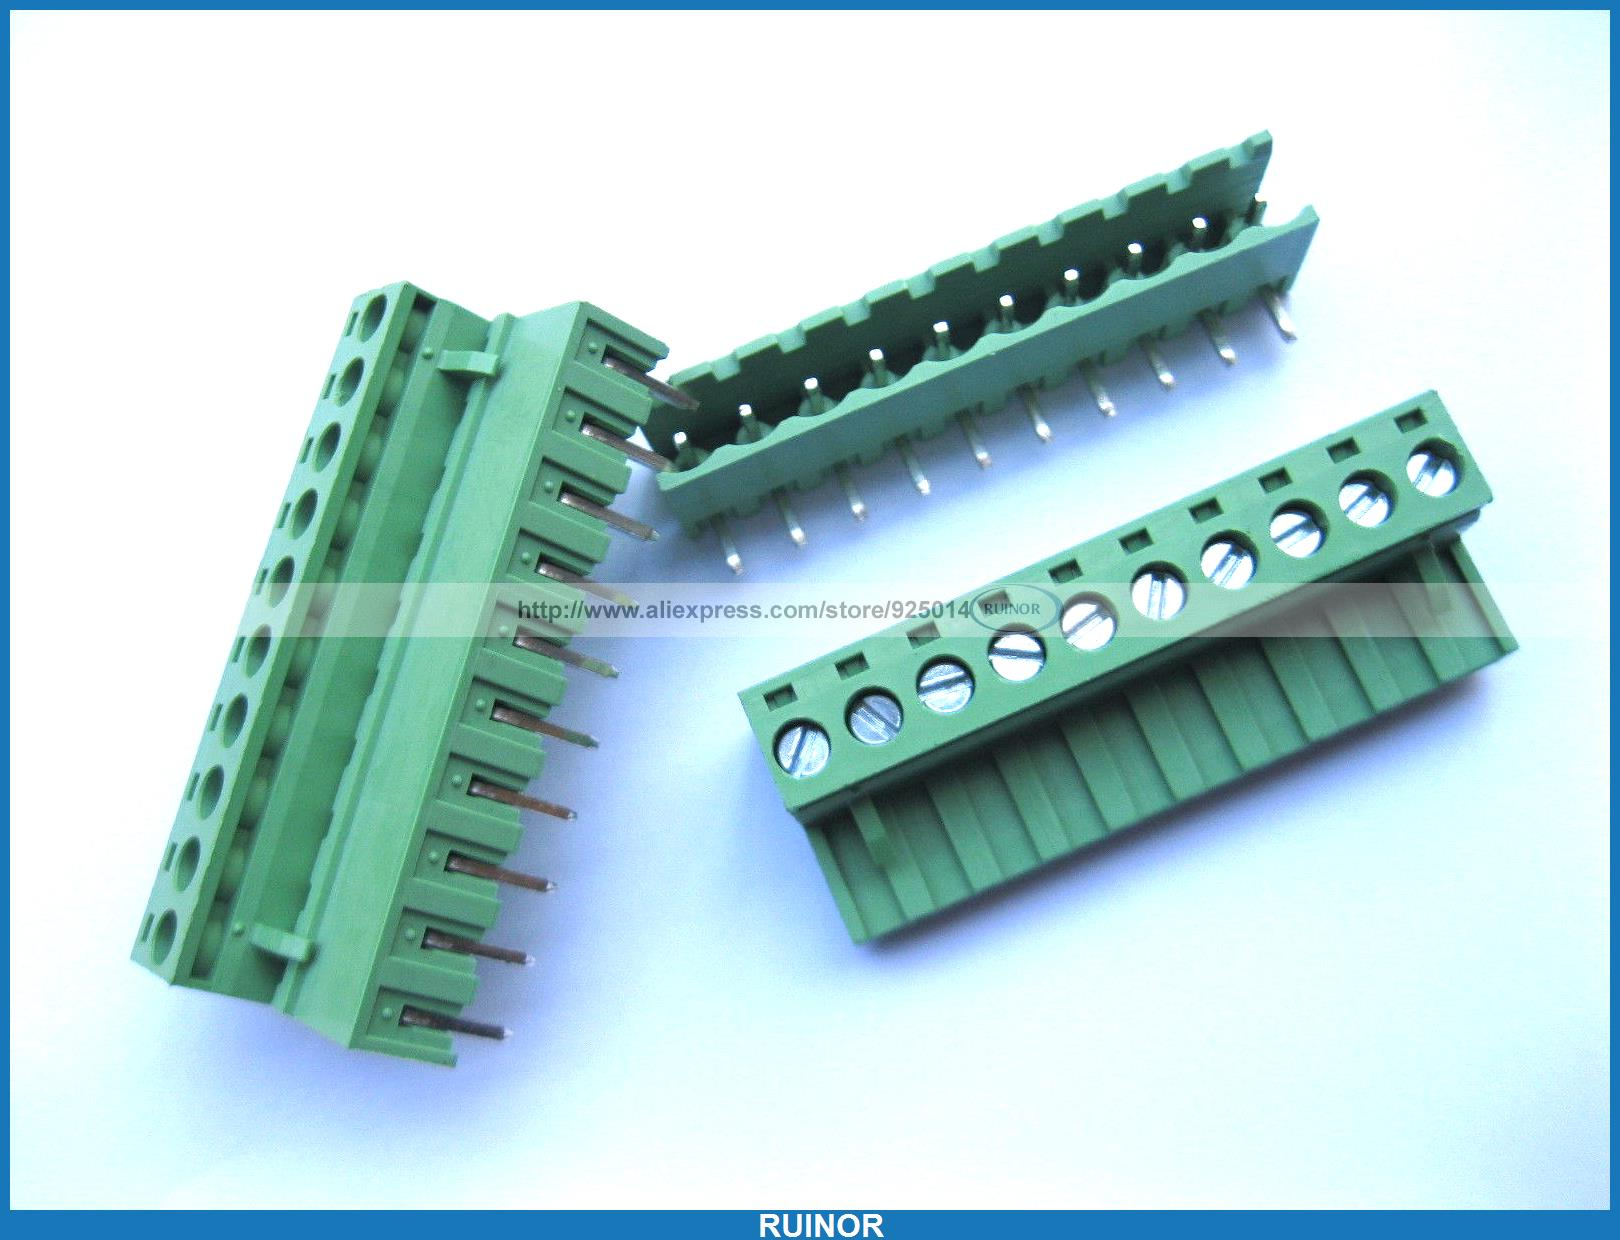 50 Pcs 5 08mm Angle 10 Pin Screw Terminal Block Connector Pluggable Type Green 5 pcs 400v 20a 7 position screw barrier terminal block bar connector replacement